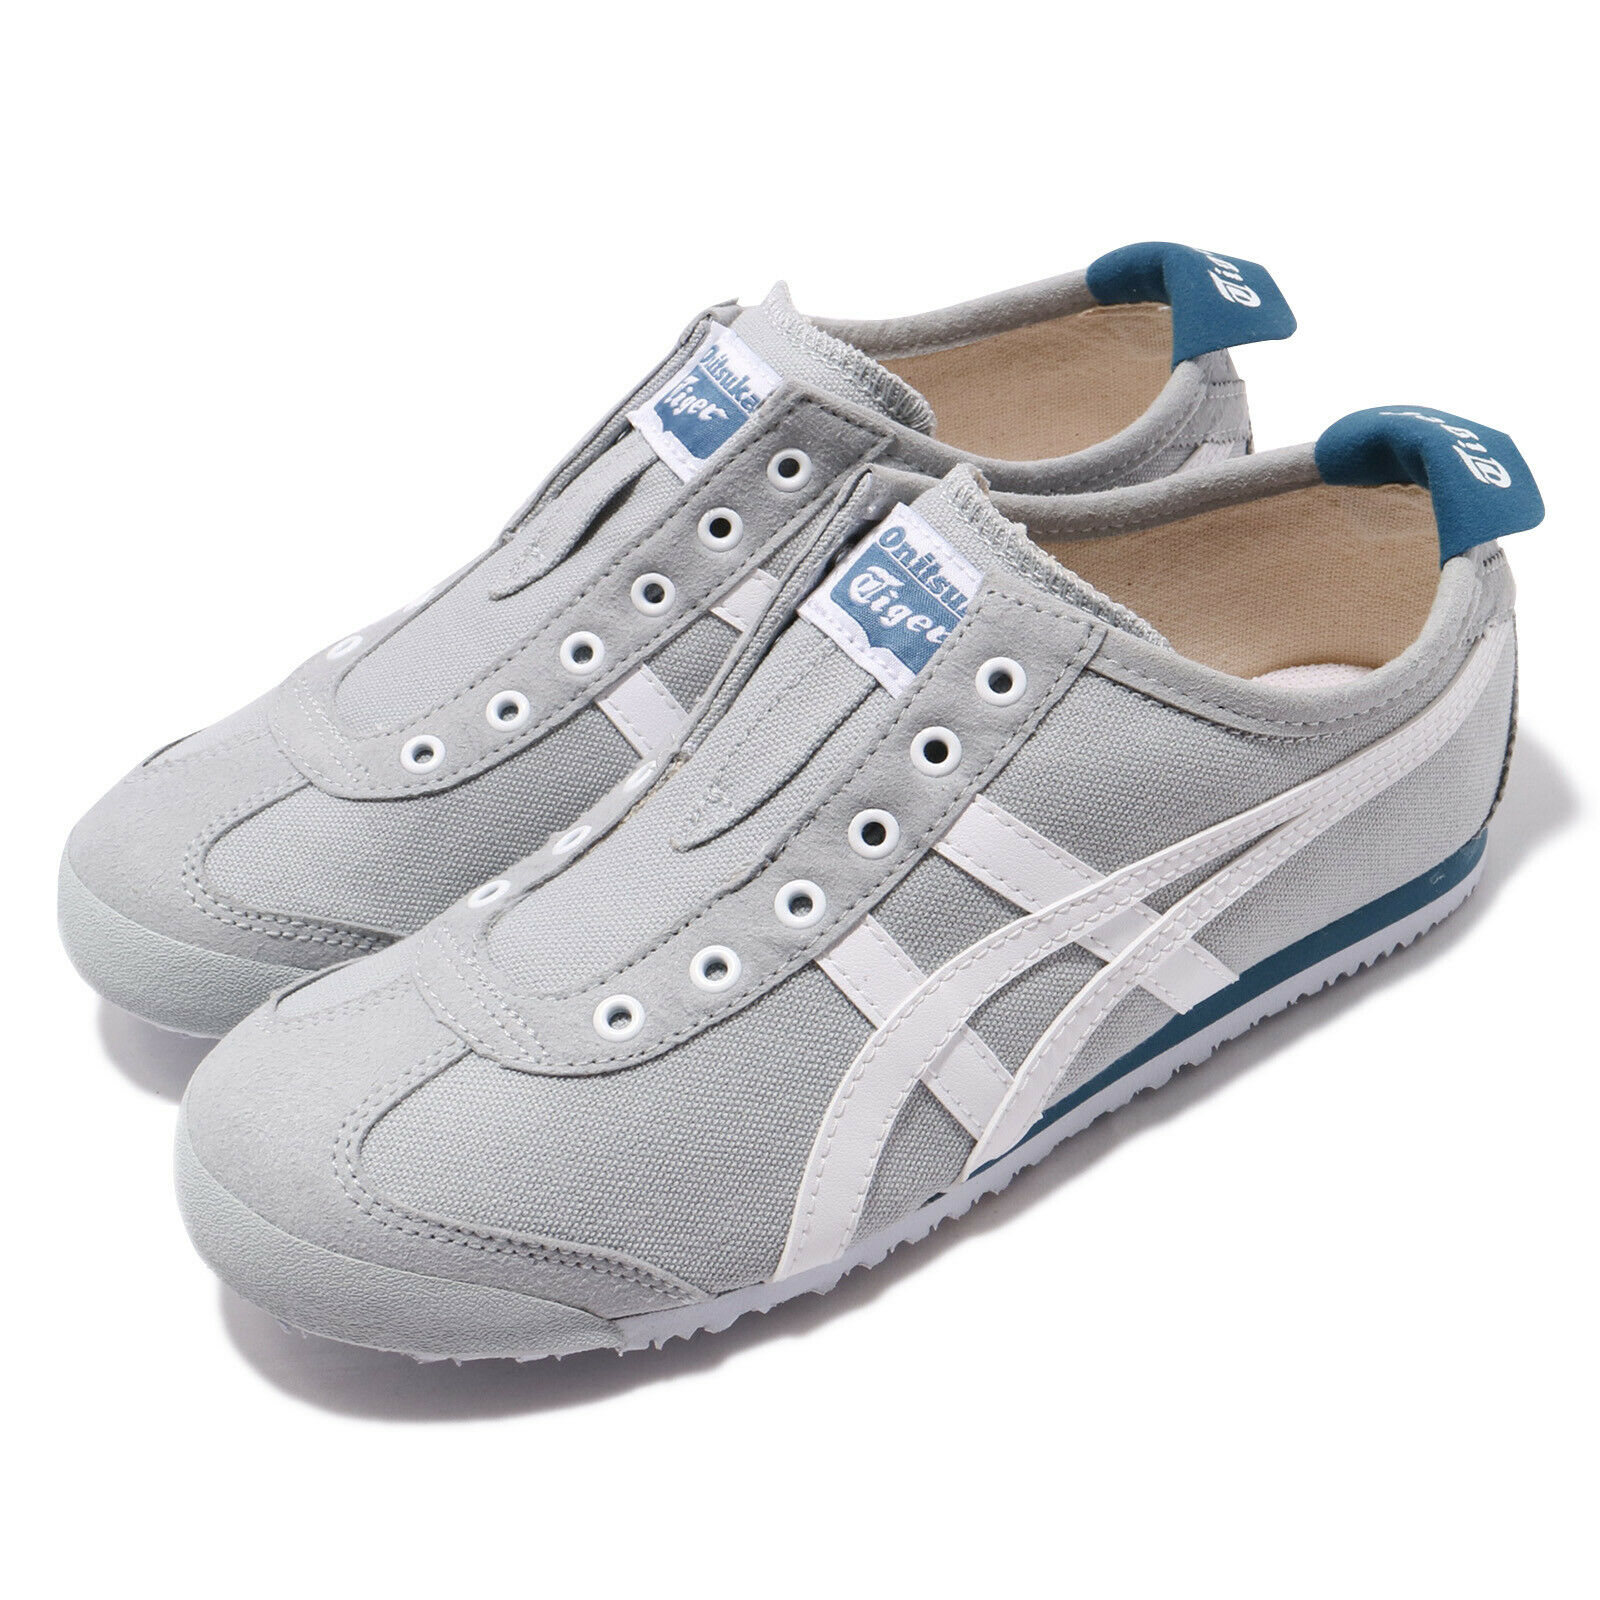 Asics Onitsuka Tiger  Mexico 66 Slip-on gris blancoo Hombre Mujer Unisex 1183A360-020  mejor opcion